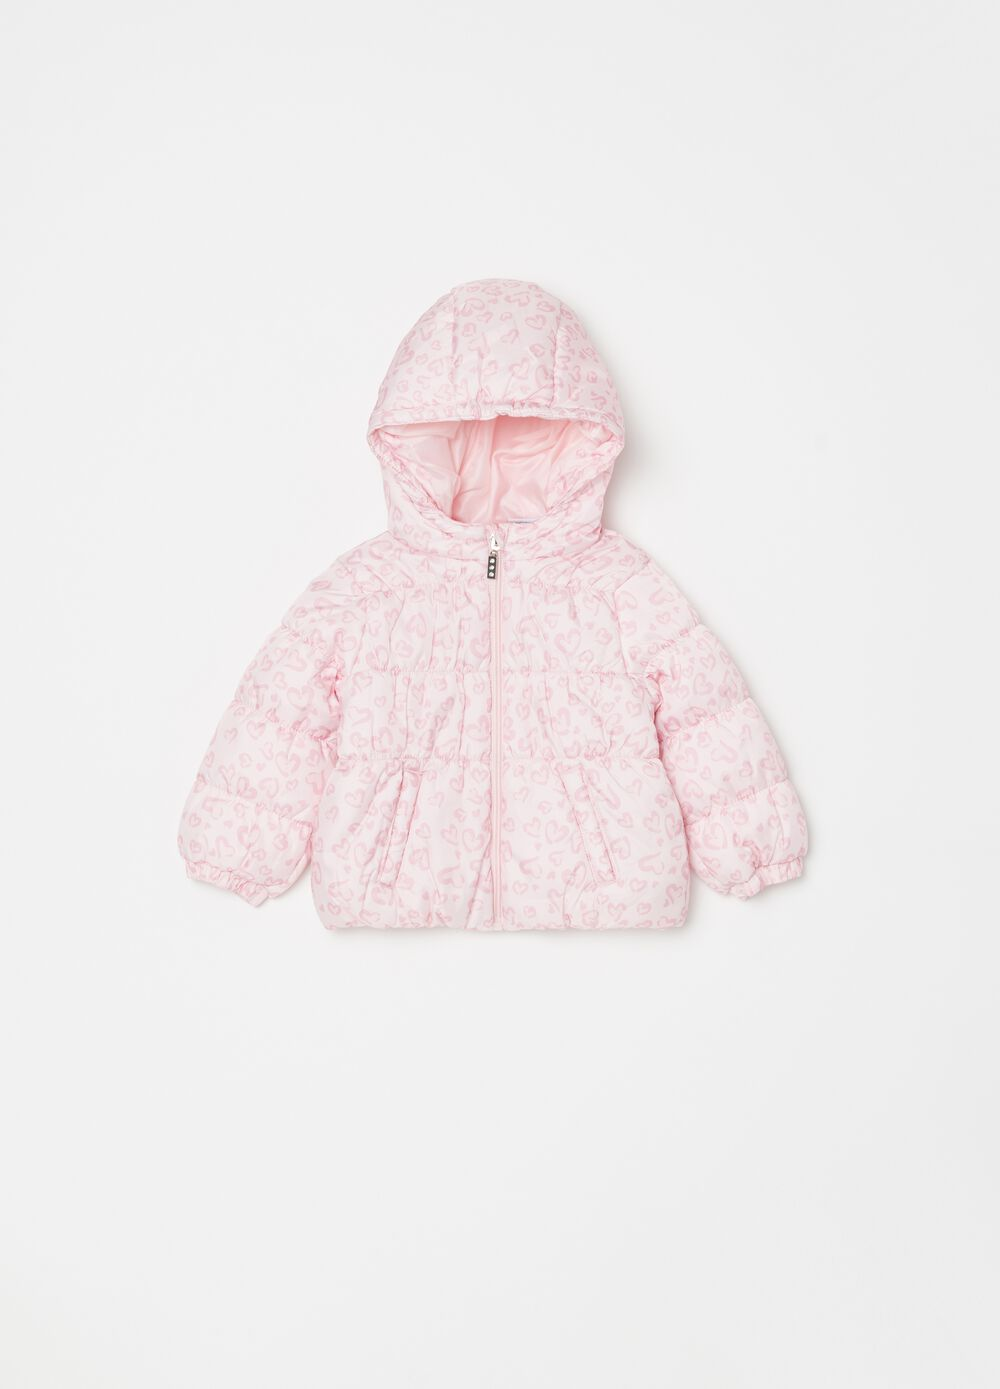 Padded jacket with hearts